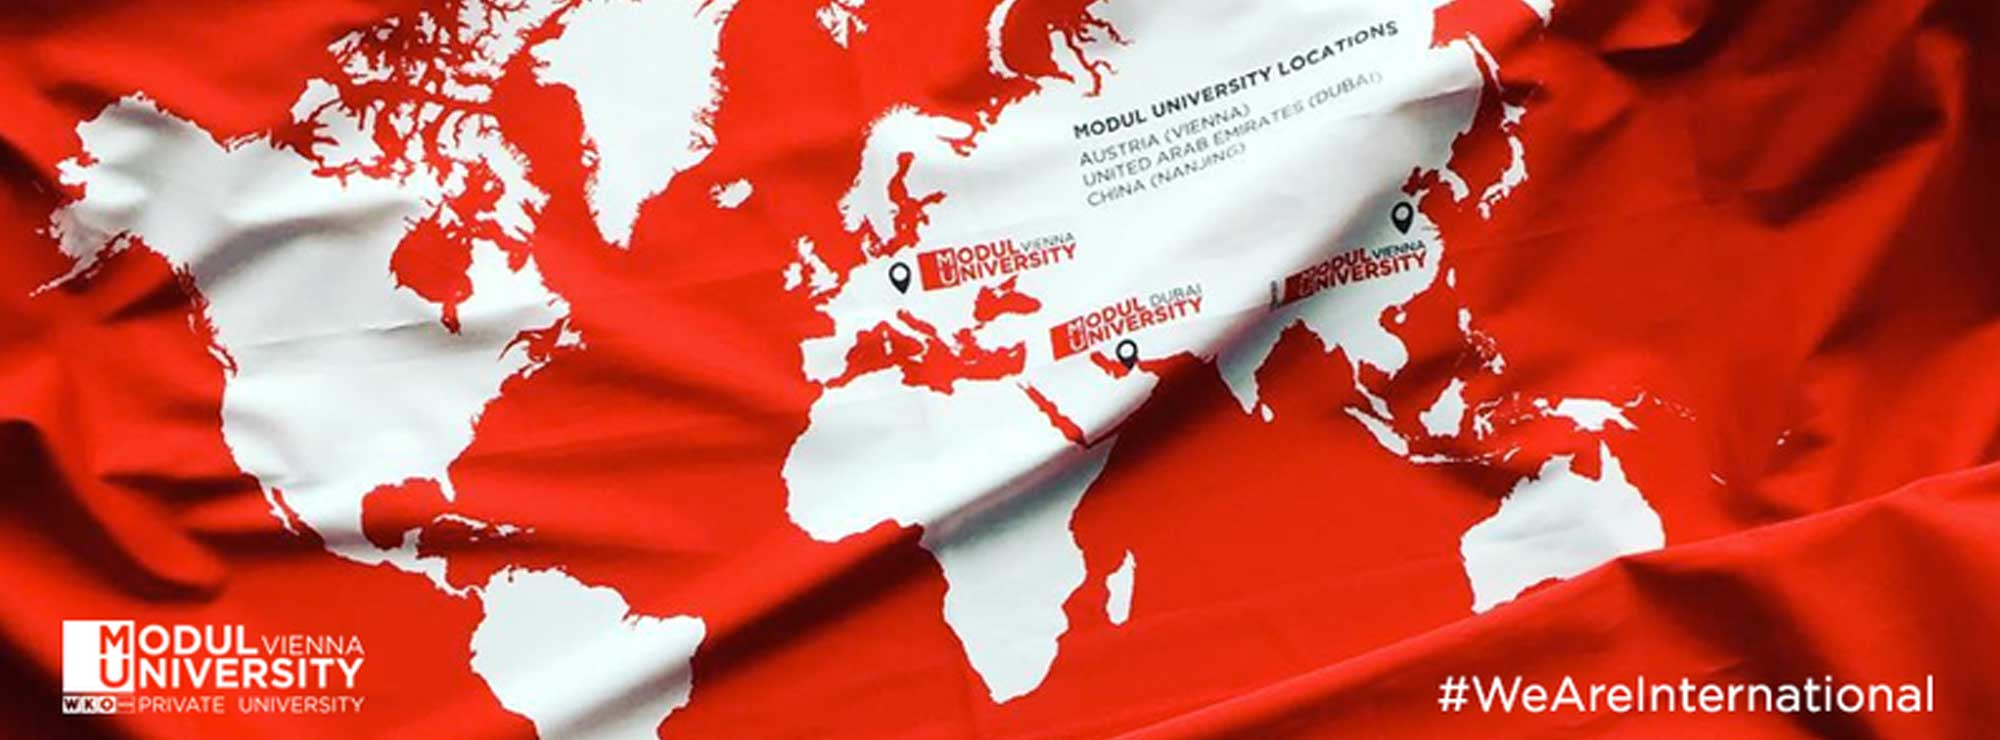 global-campus-header-image.jpg